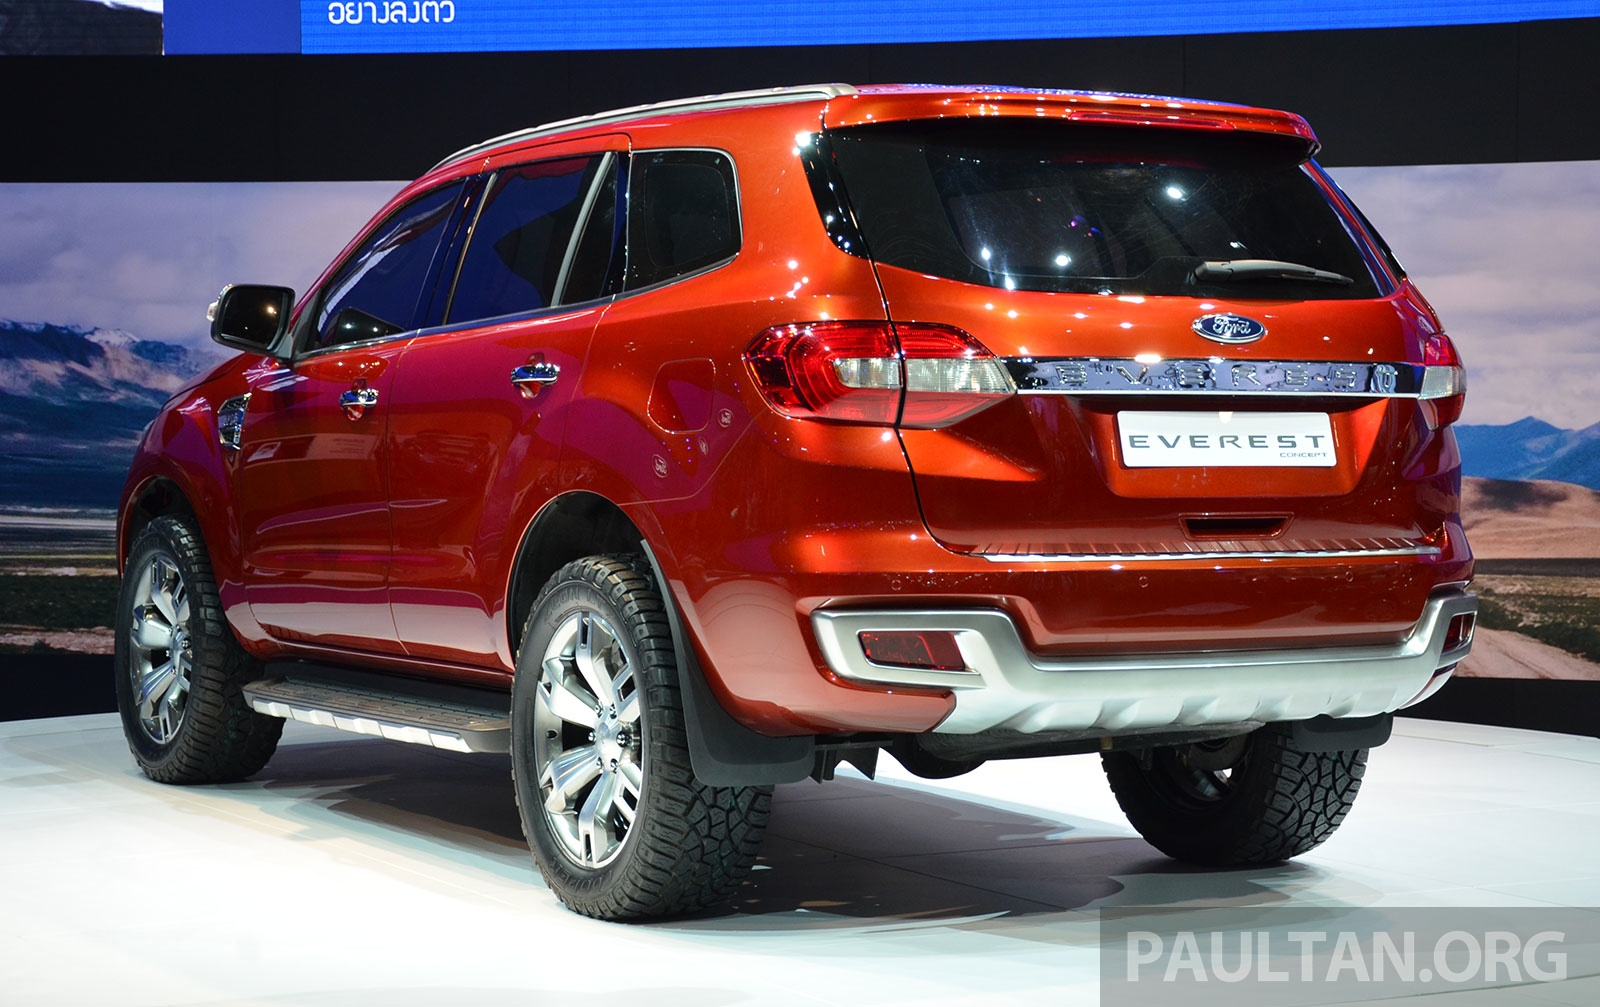 Ford Everest Concept unveiled at Bangkok Motor Show – production SUV will be built in Thailand